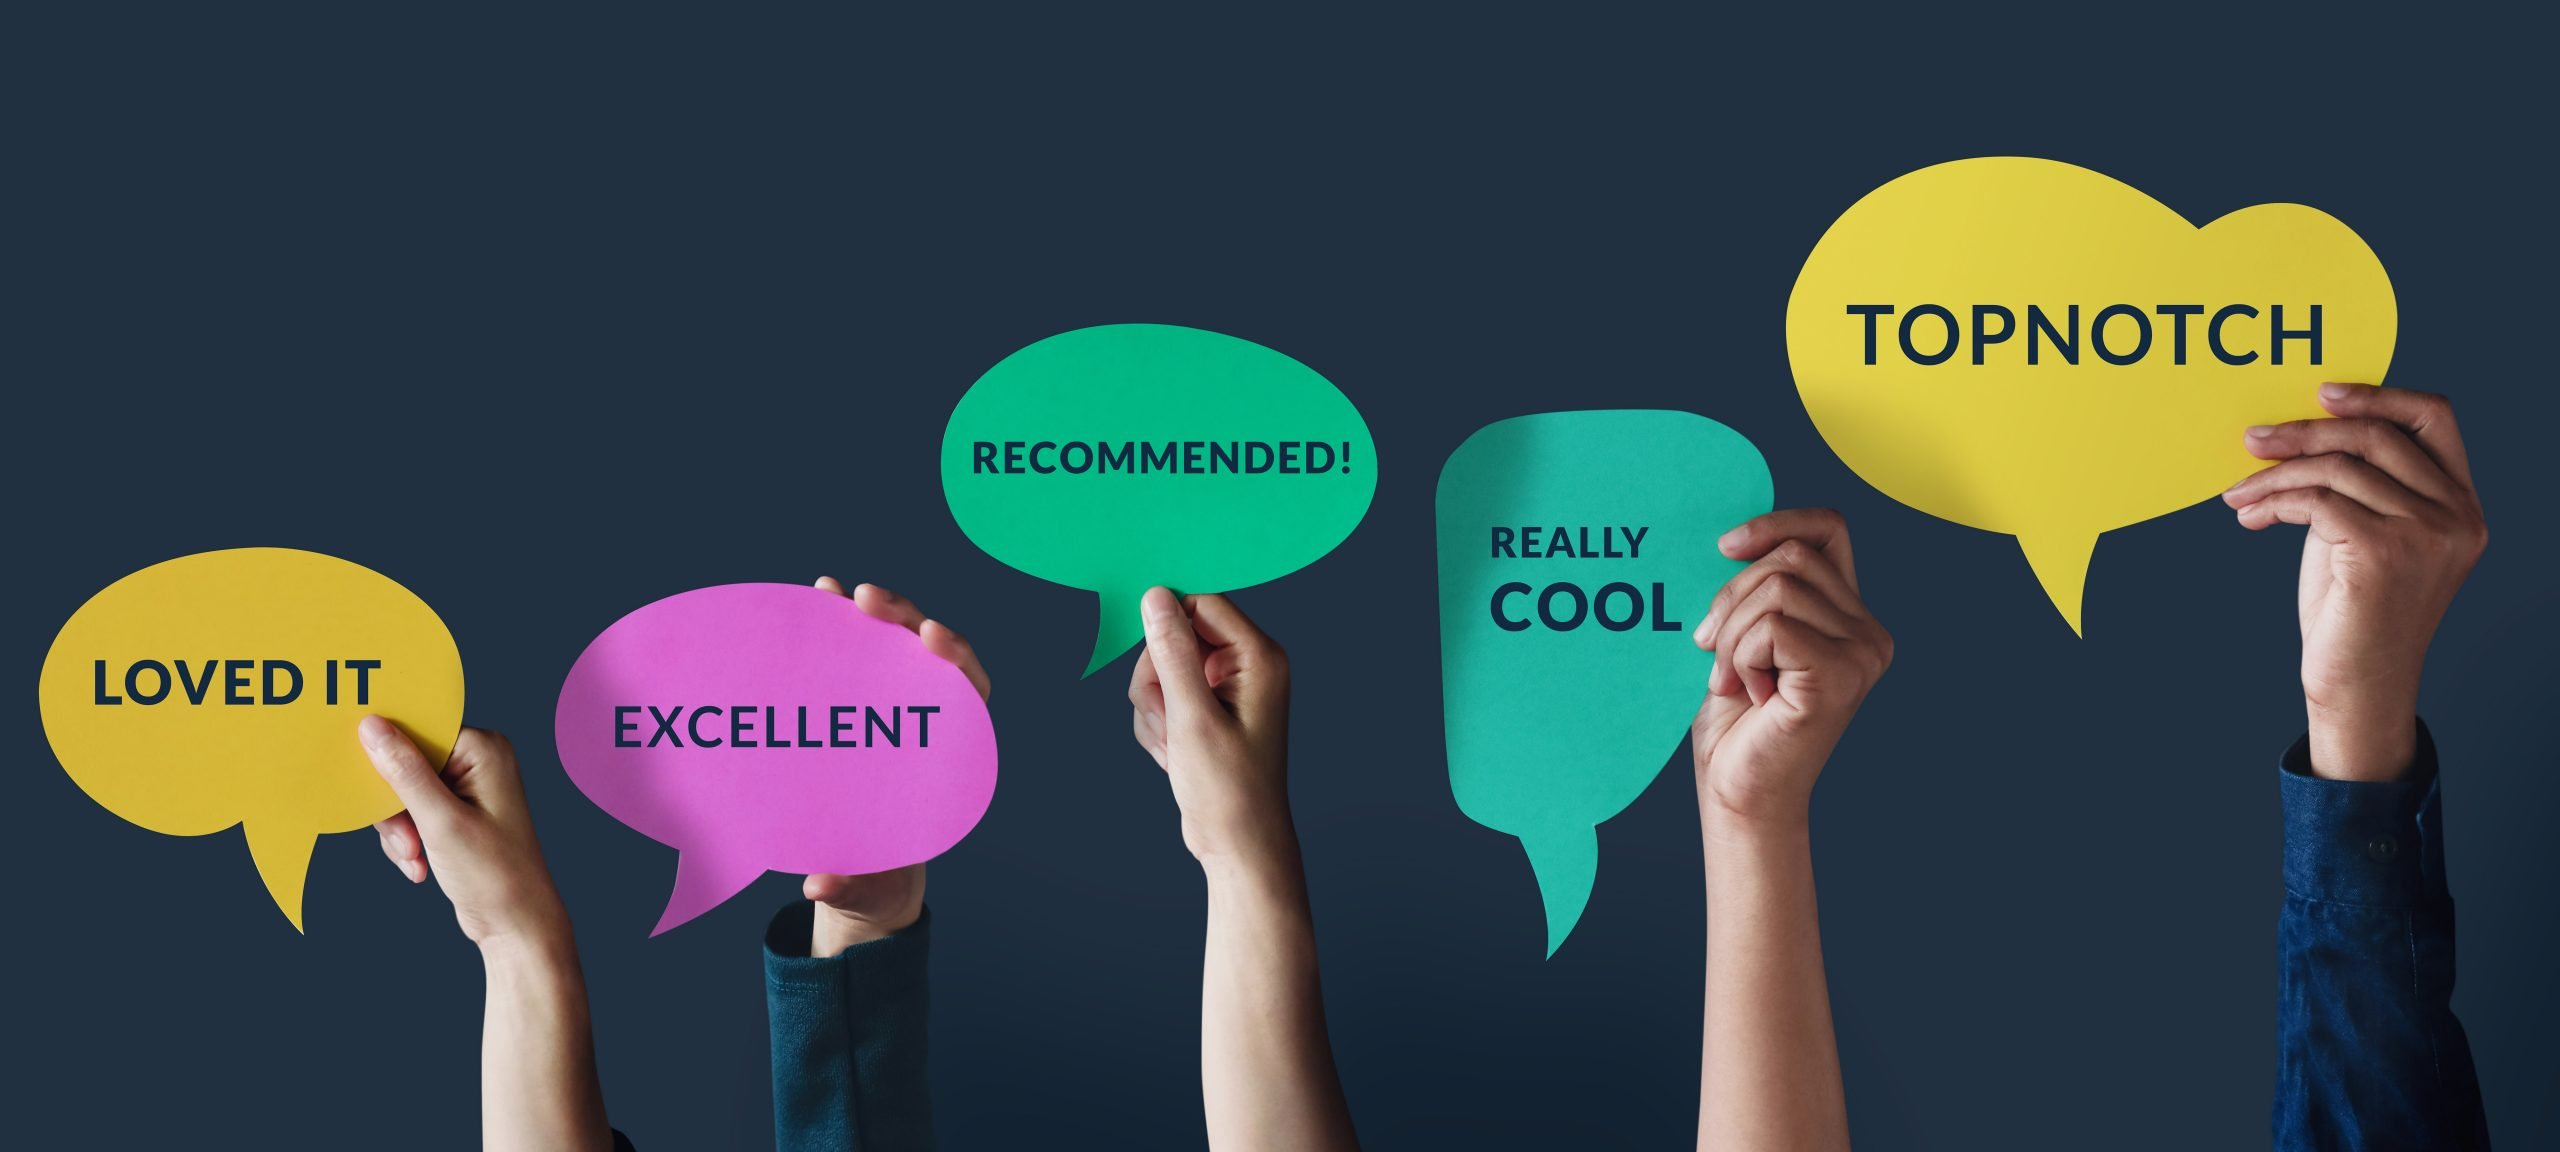 website conversion rates improvement by customer reviews